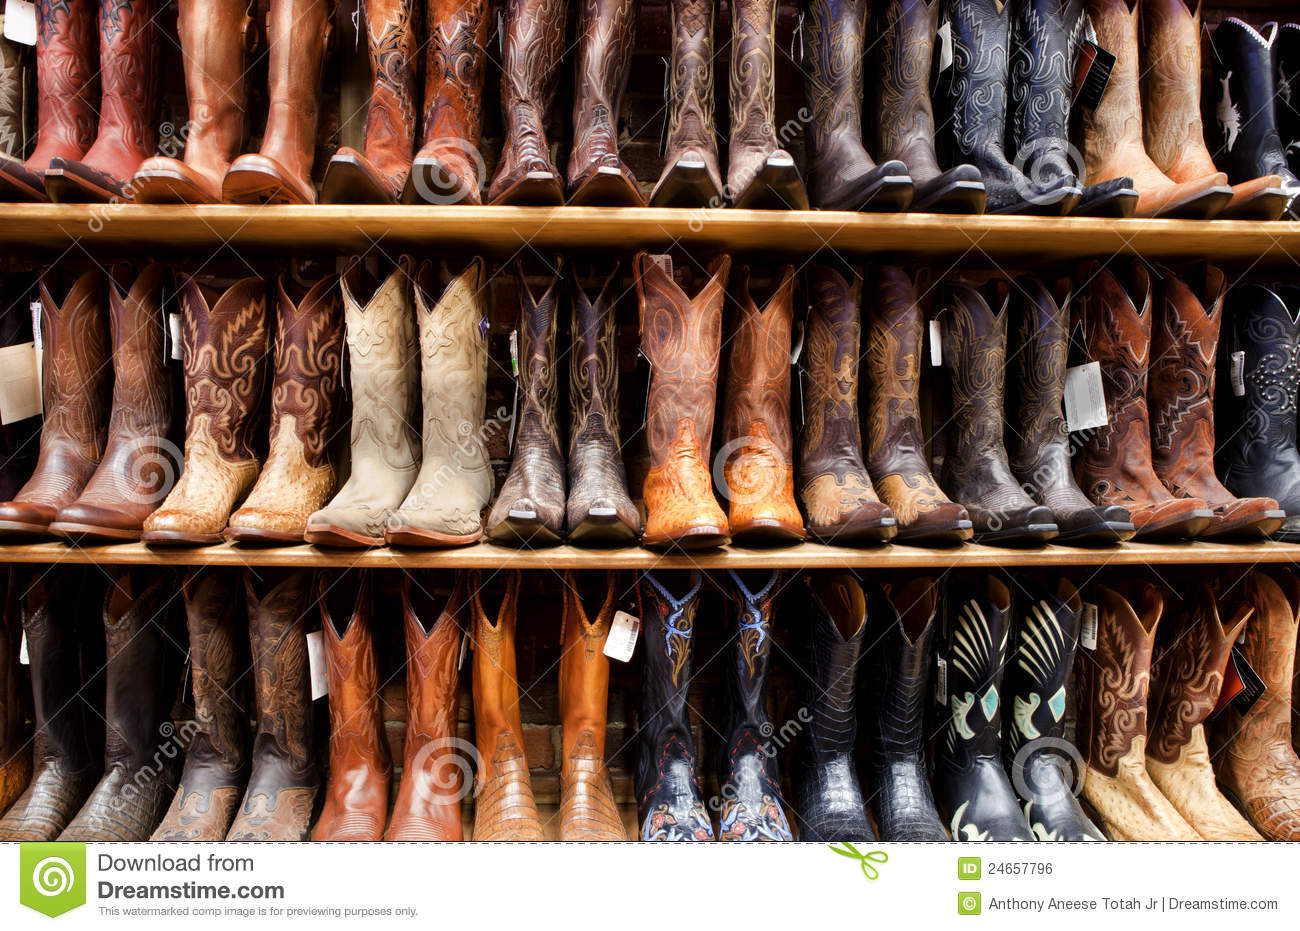 Texas Shoe Store Royalty Free Stock Image - Image: 24657796